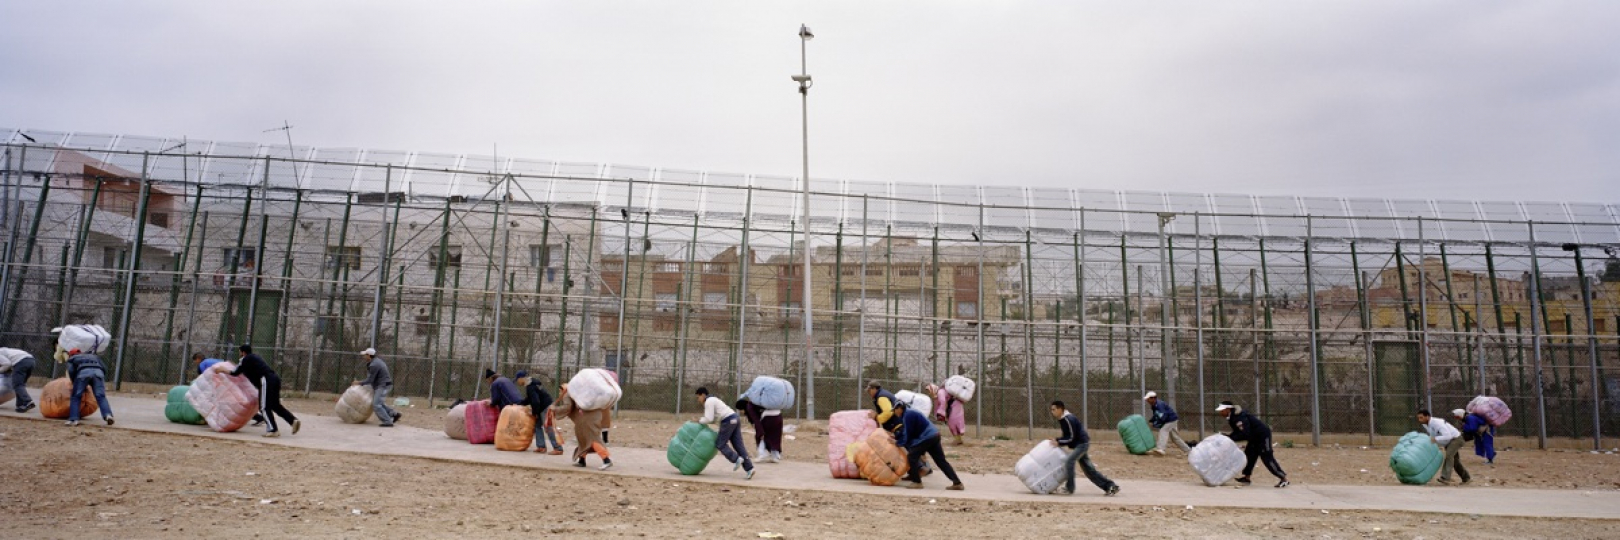 Marrocans pushing package of clothes towards a borderentrance to Marroco from the Spanish enclave of Mellila. The fence was erected over the last decade to prevent immigration from Africa to the European Union. © Kai Wiedenhöfer